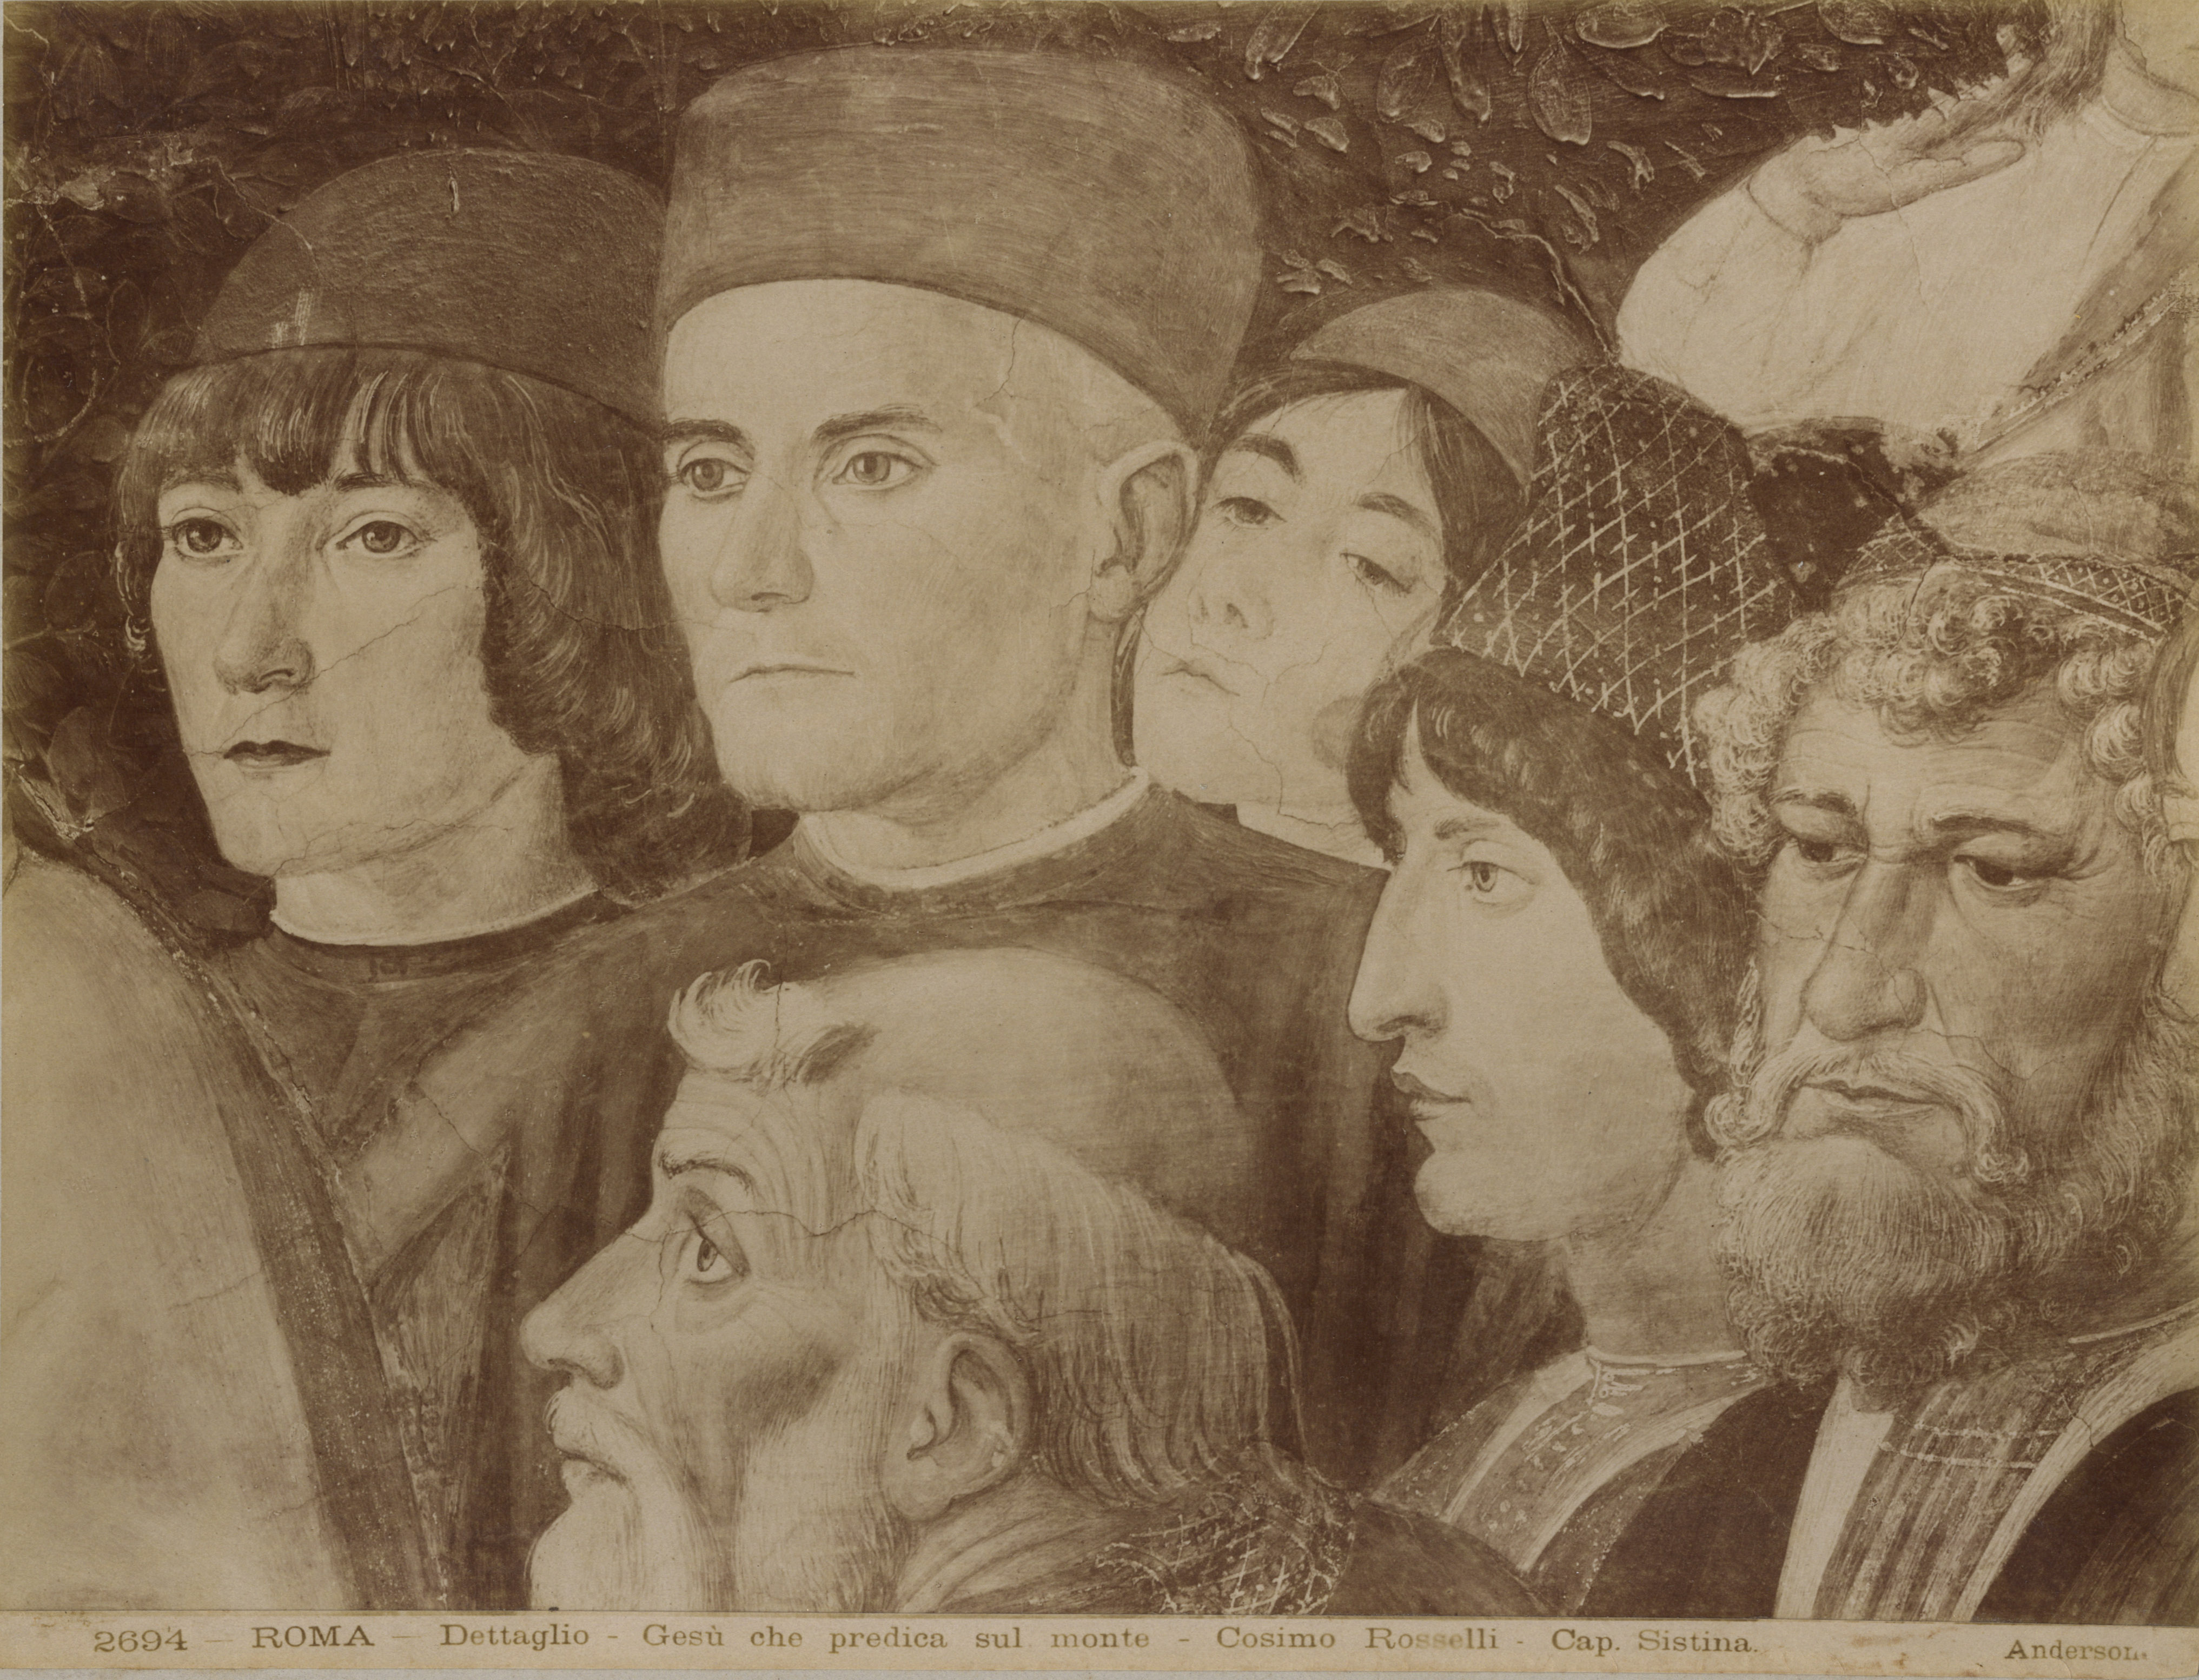 Print from commercial publishers collected by Professor F. H. Heinemann, showing detail of Cossimo Rosselli fresco titled Sermon on the Mount painted between 1481 and 1482